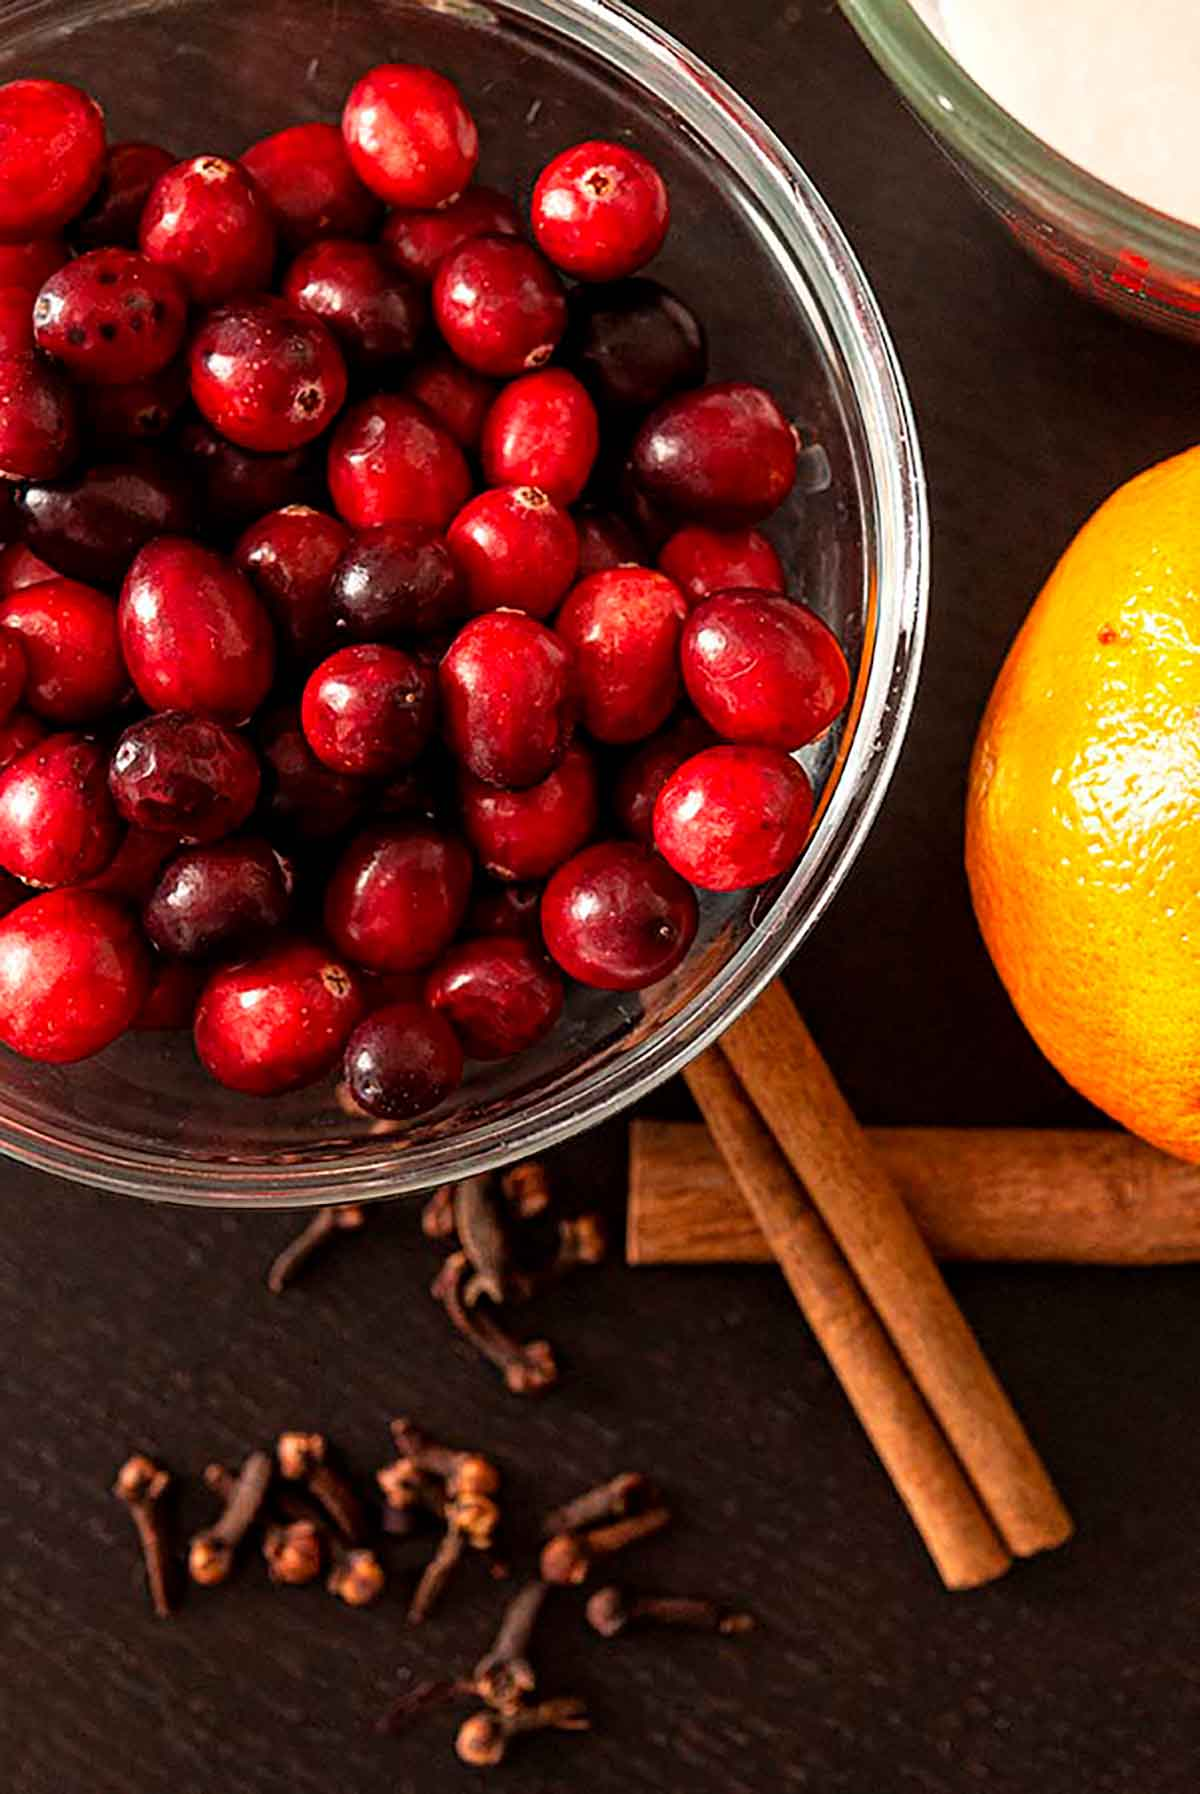 A bowl of cranberries beside 2 cinnamon sicks, a sprinkling of cloves and an orange on a table.